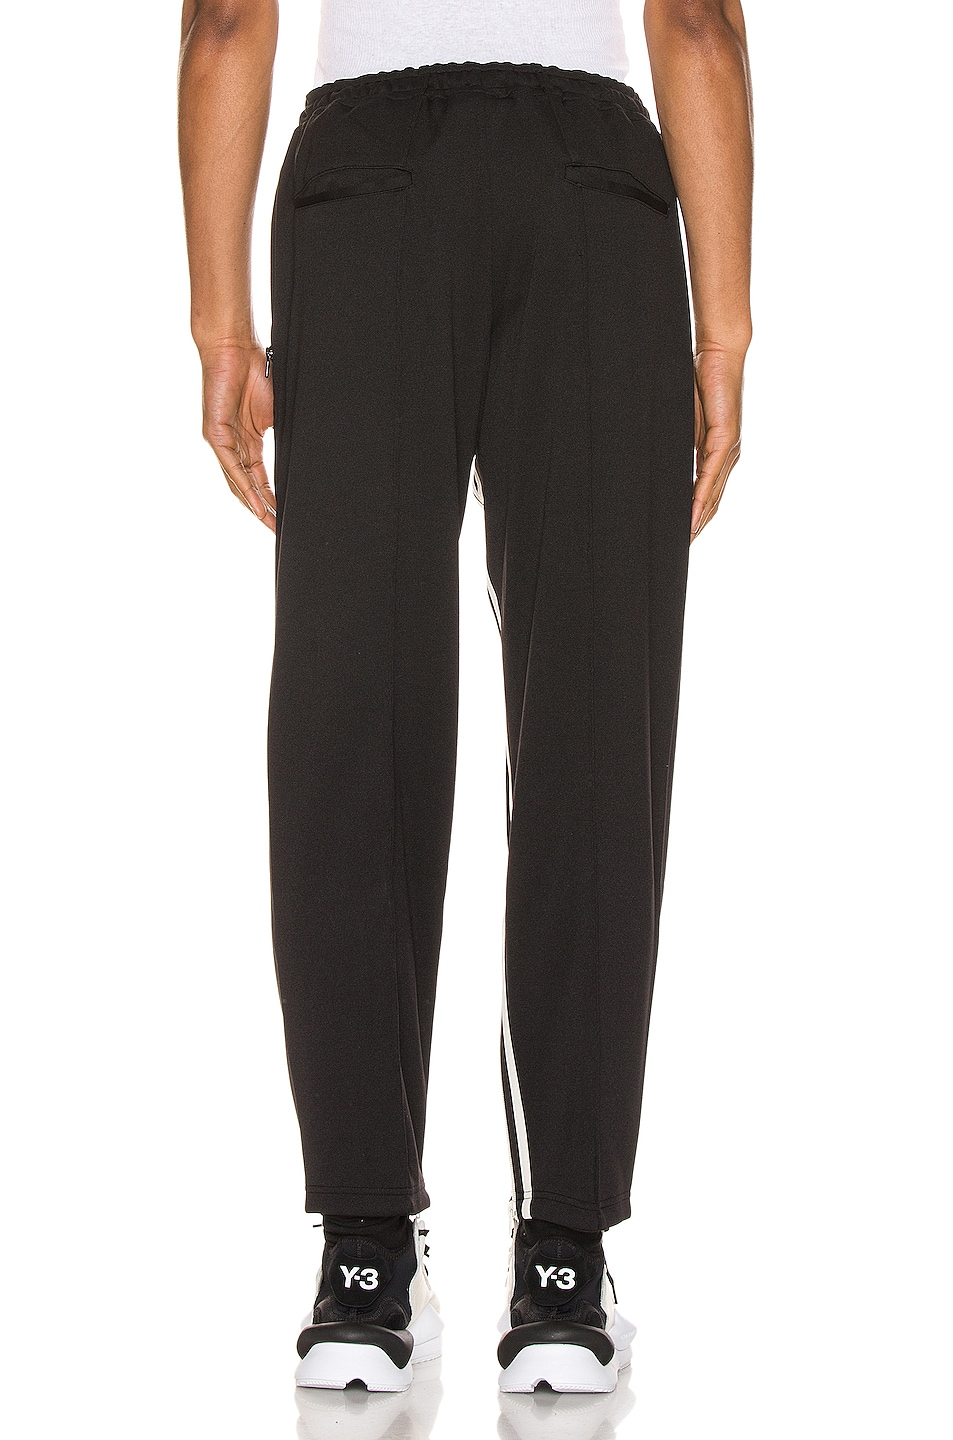 Image 4 of Y-3 Yohji Yamamoto 3 Striped Cropped Track Pant in Black & Ecru